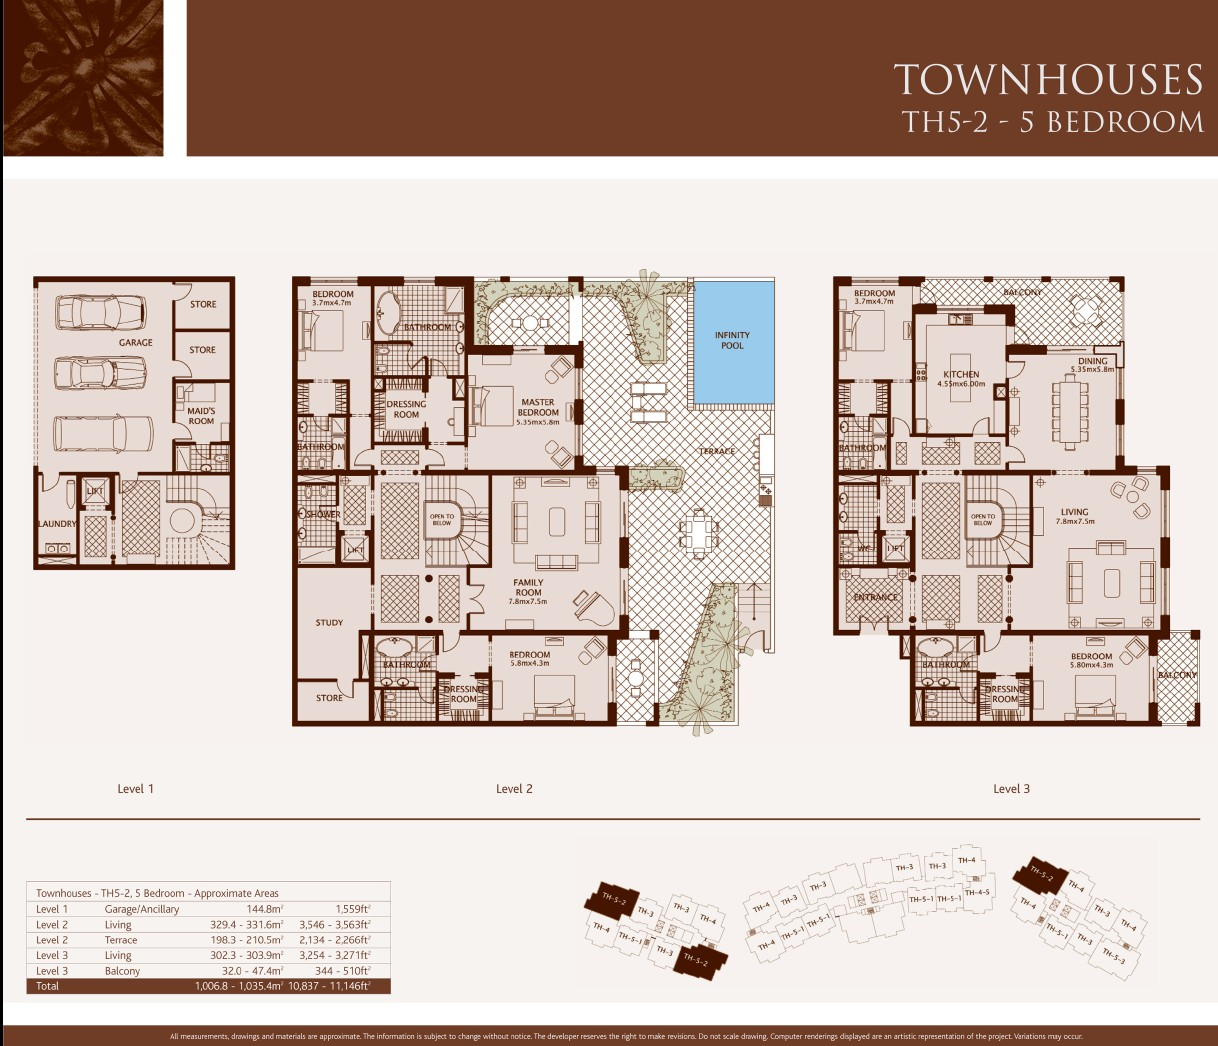 5 bedroom townhouse floor plans home design inspiration for Townhouse plans